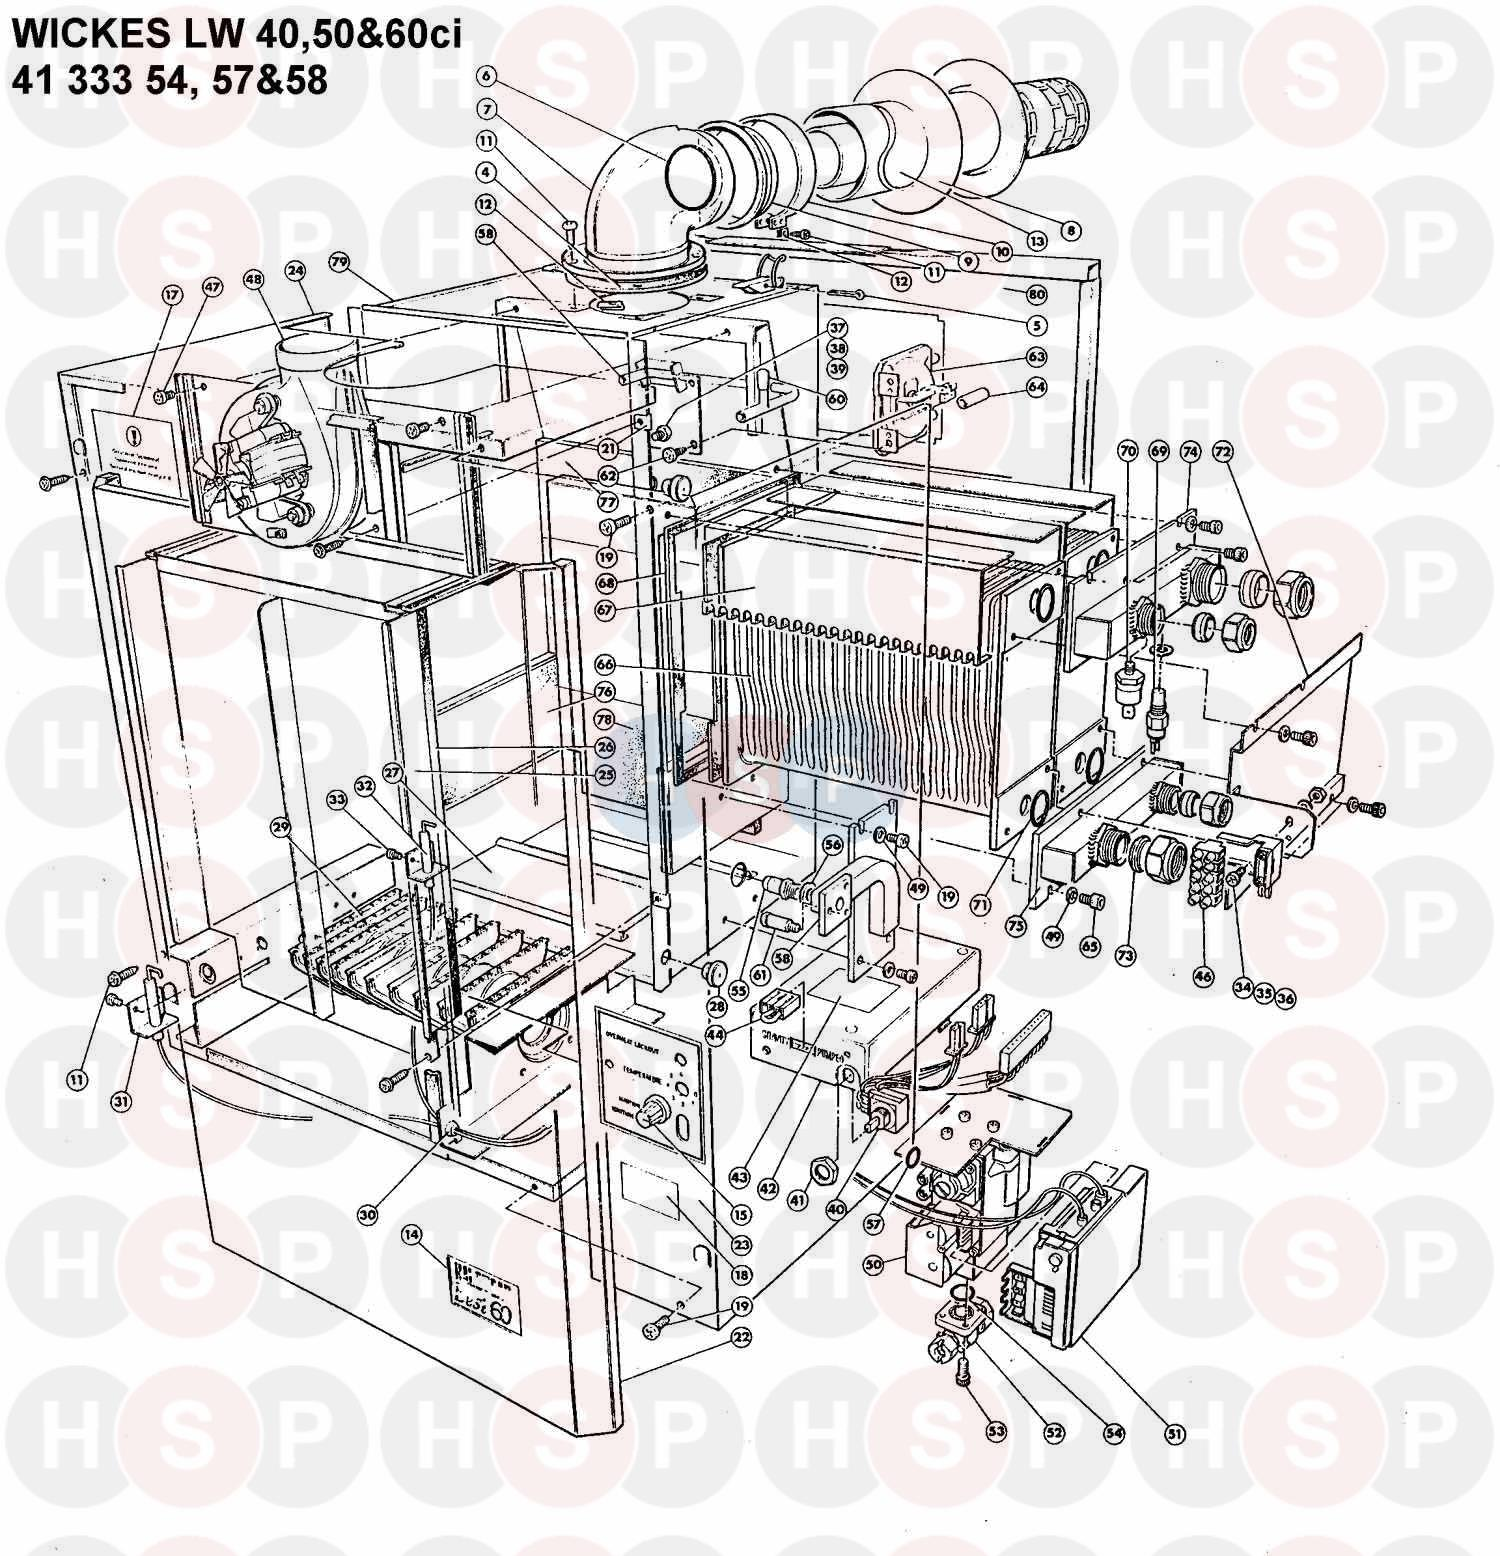 Halstead WICKES LW 50CI Appliance Diagram (BOILER ASSEMBLY